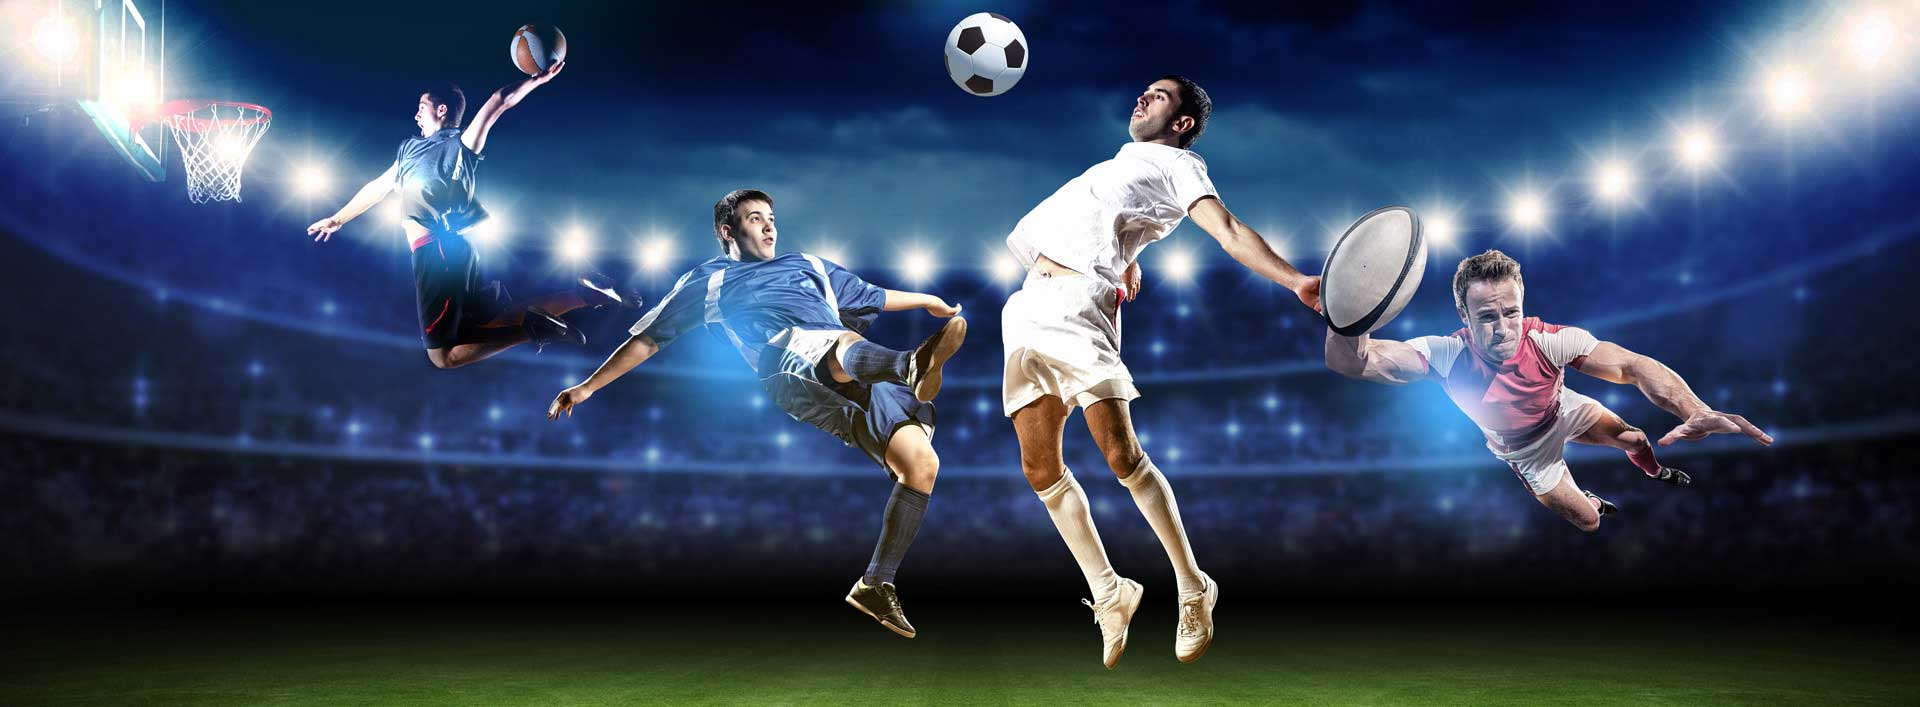 Football Predictions, Soccer Predictions, football and soccer tips, profesional analysis 100% matches, real soccer football fixed matches, todays football betting tips, football betting tips saturday, football accumulator tips for this weekend